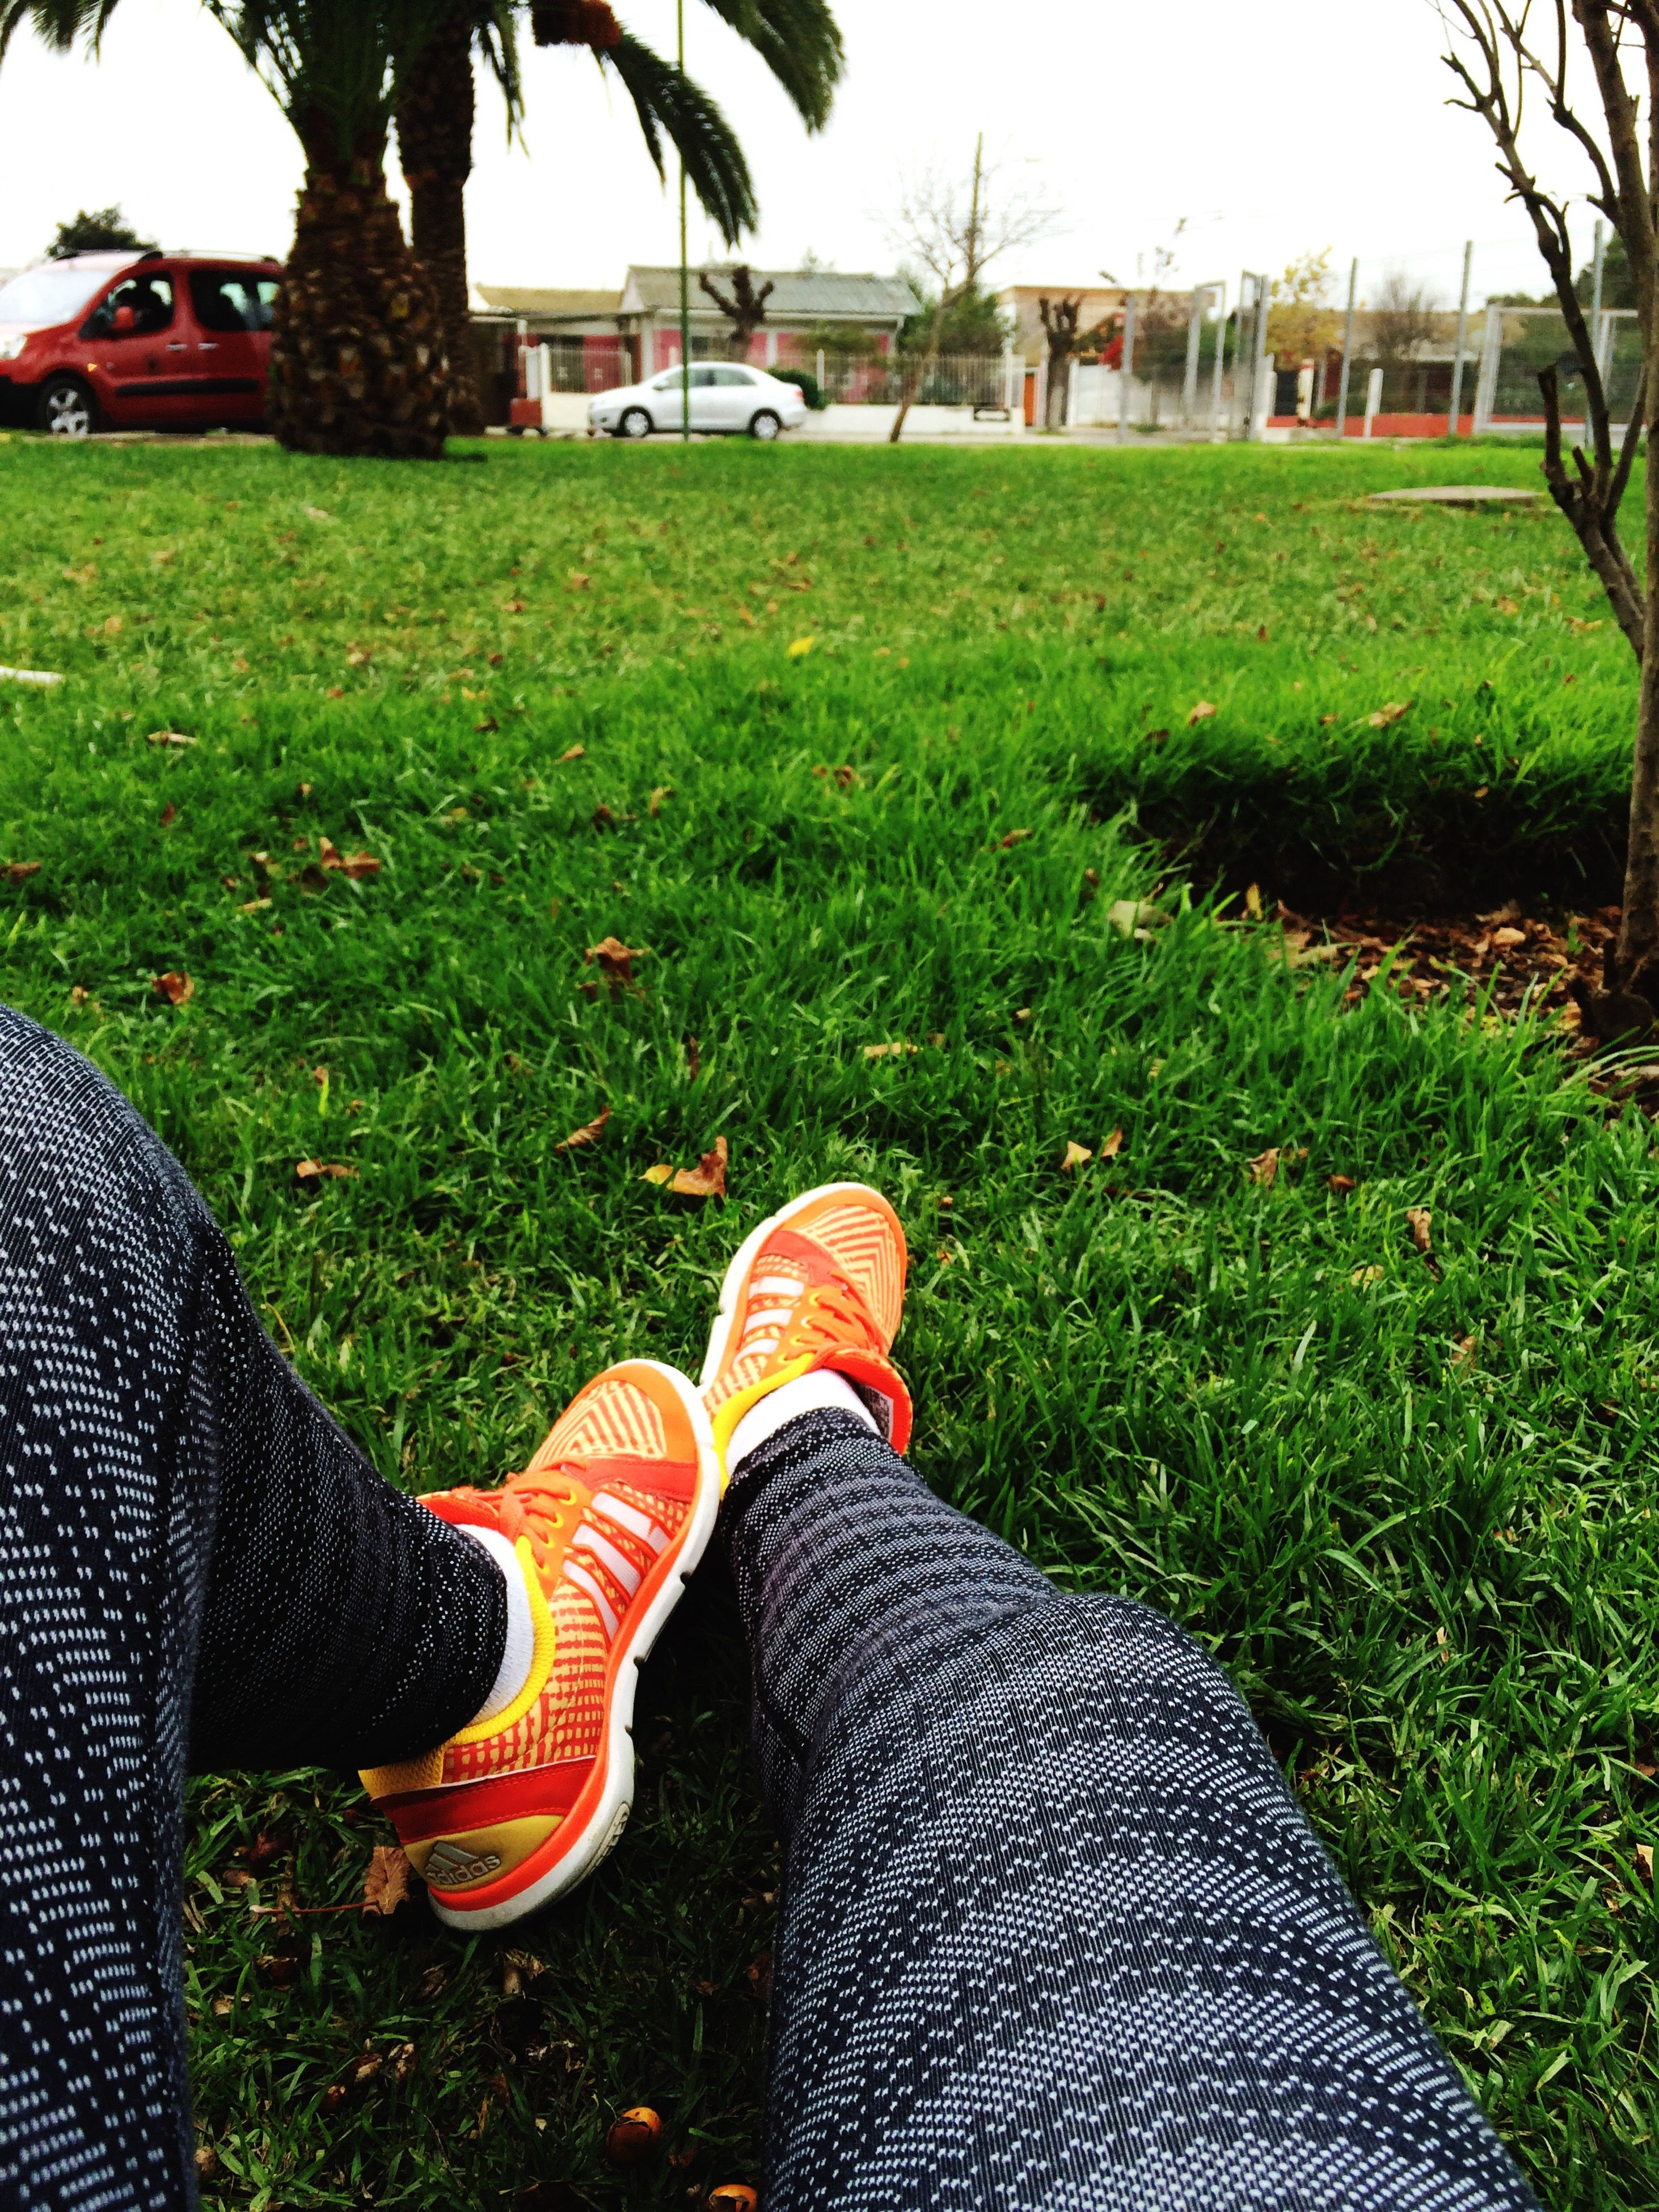 grass, low section, person, shoe, grassy, field, lawn, relaxation, green color, personal perspective, footwear, leisure activity, park - man made space, sitting, resting, lifestyles, day